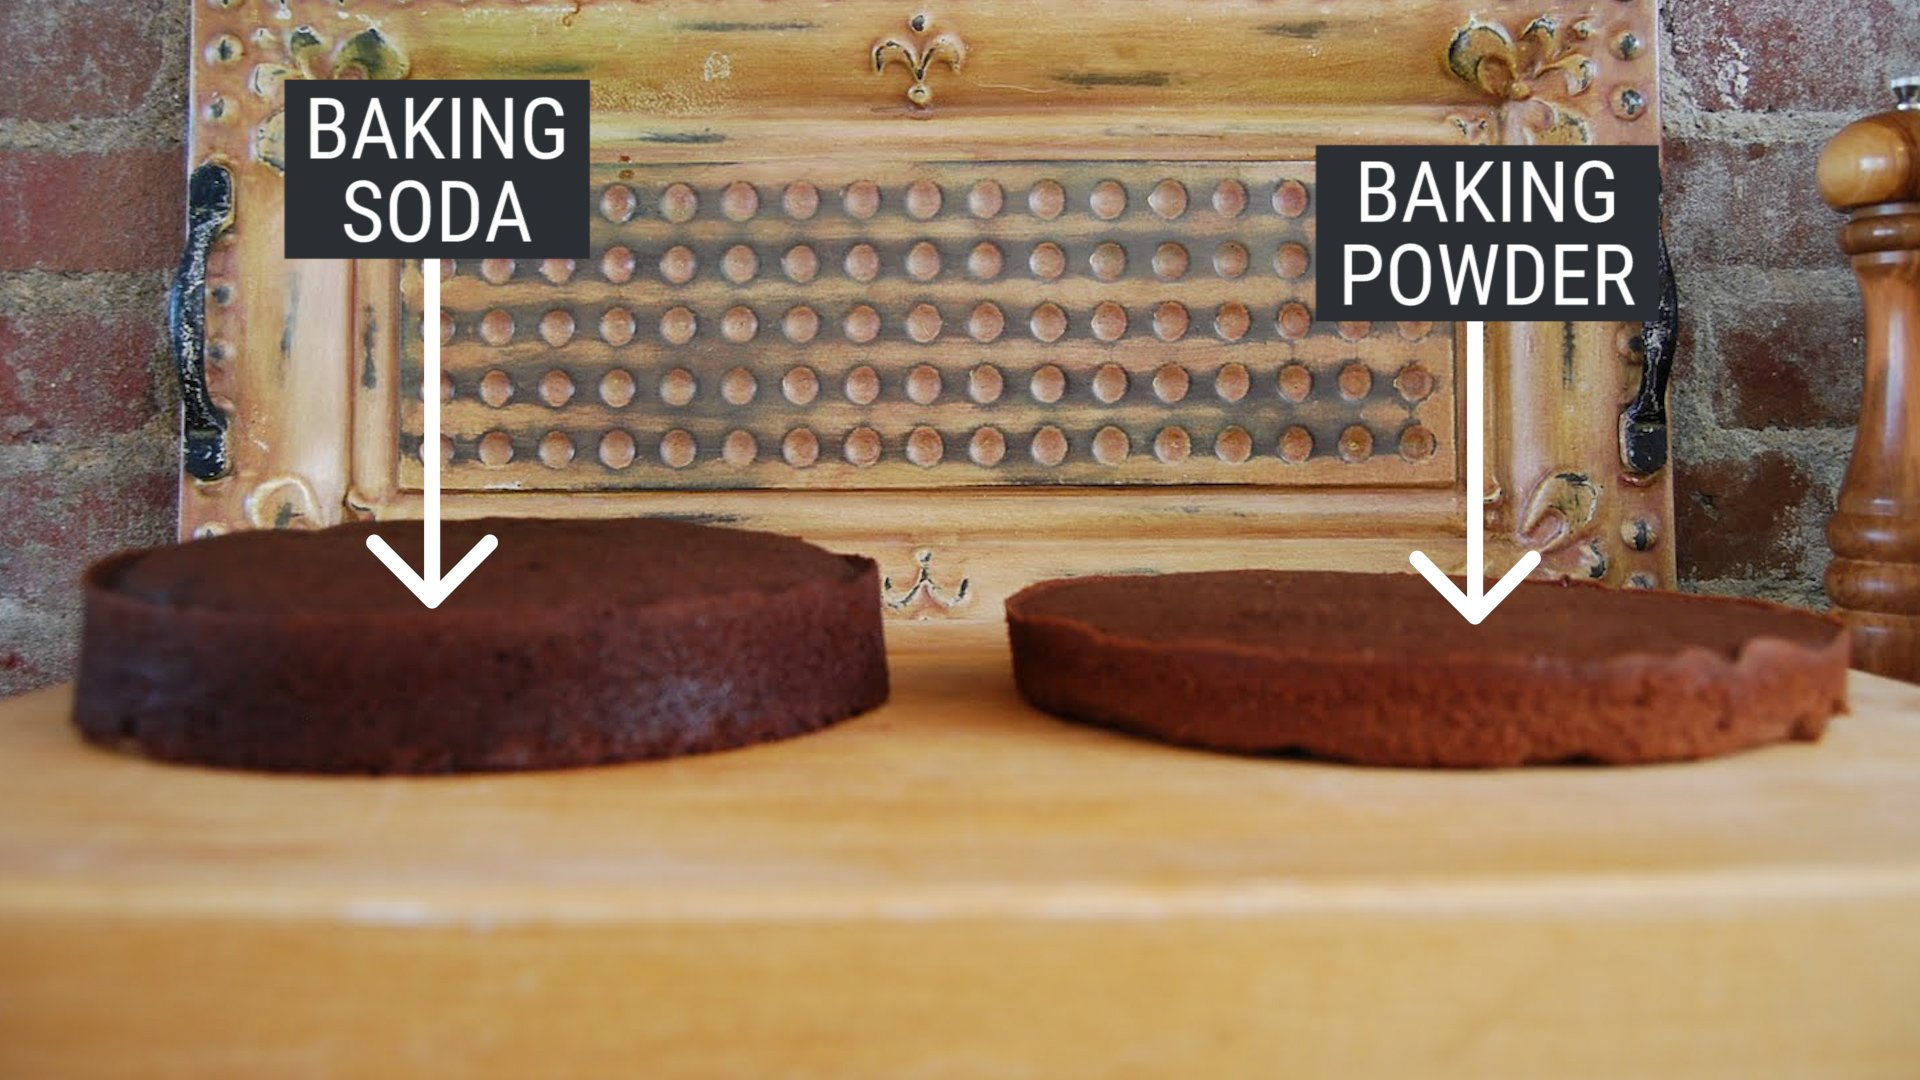 Make sure you know if your recipe calls for baking soda or baking powder https://t.co/7s6sXUGQXF